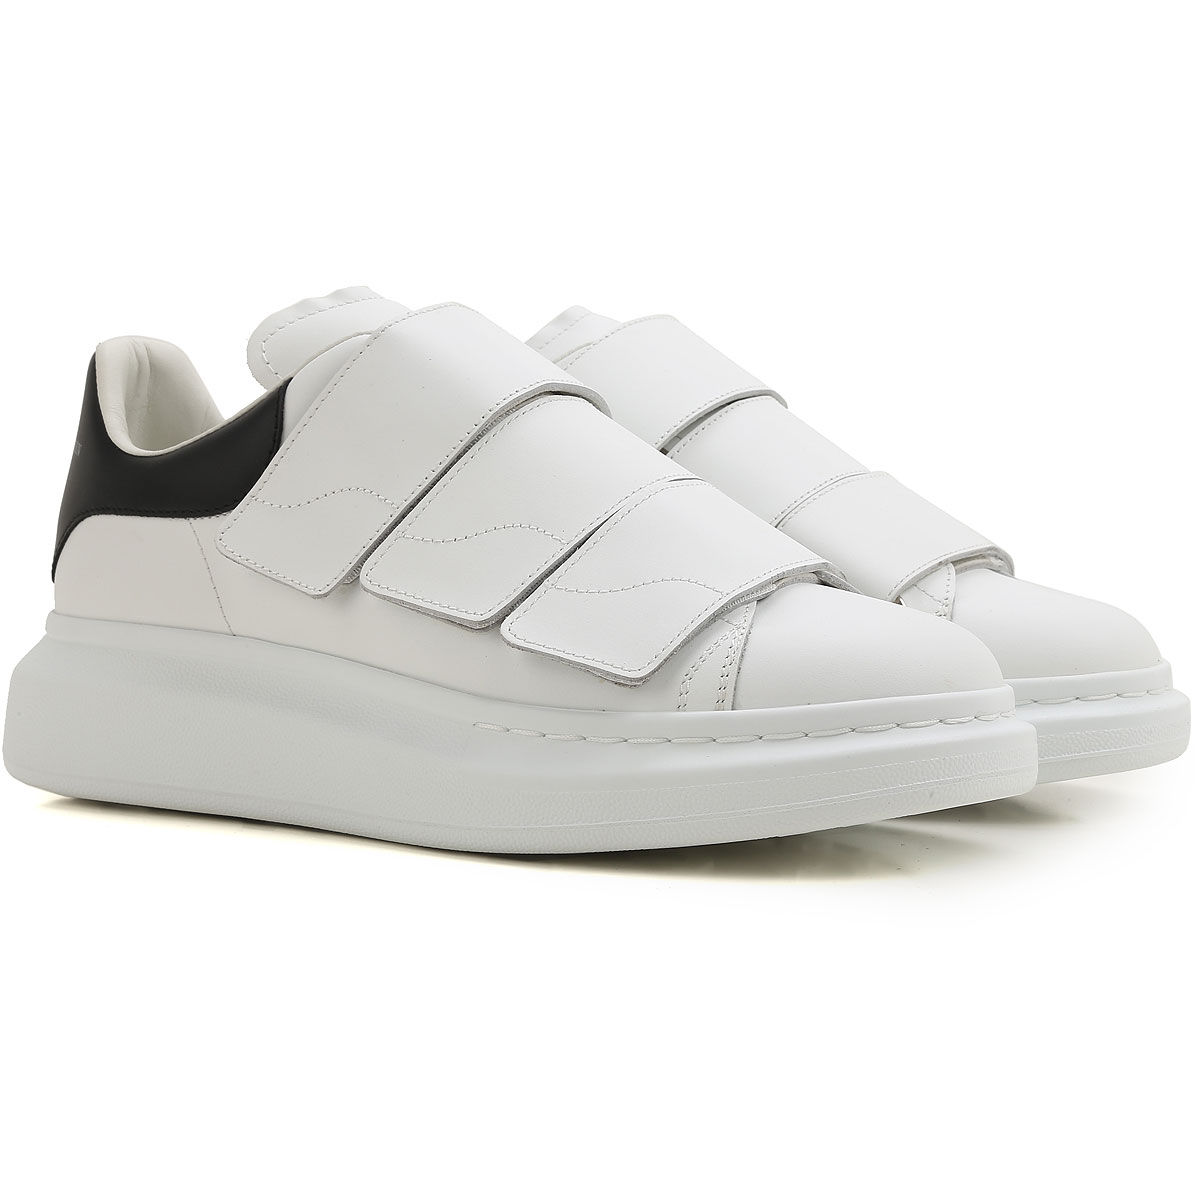 Image of Alexander Smith Sneakers for Men On Sale in Outlet, White, Leather, 2017, 7 7.5